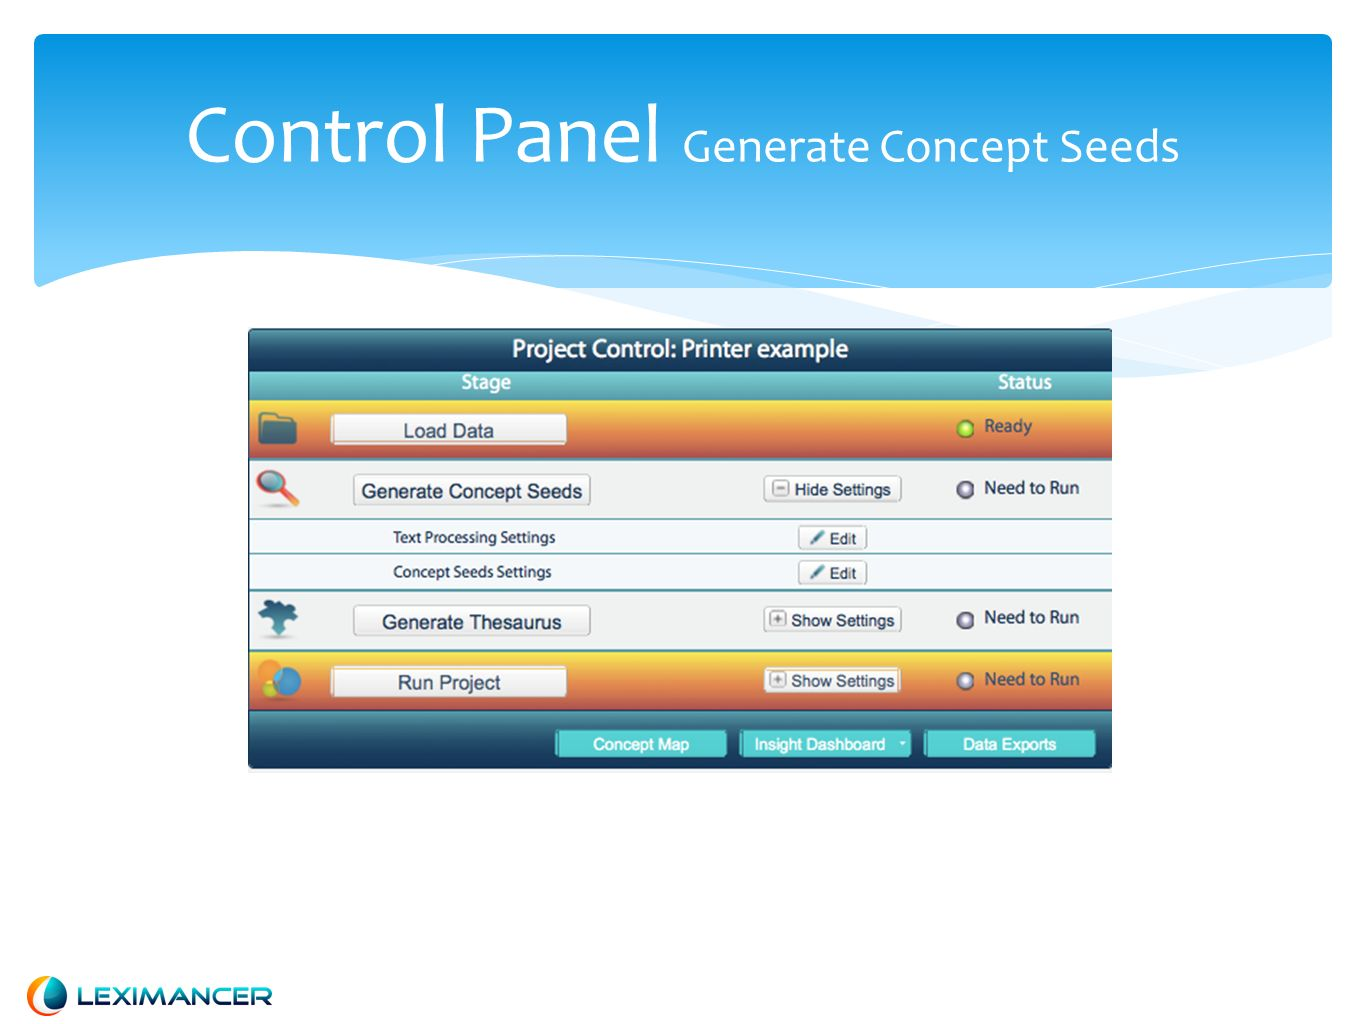 Control Panel Run Project